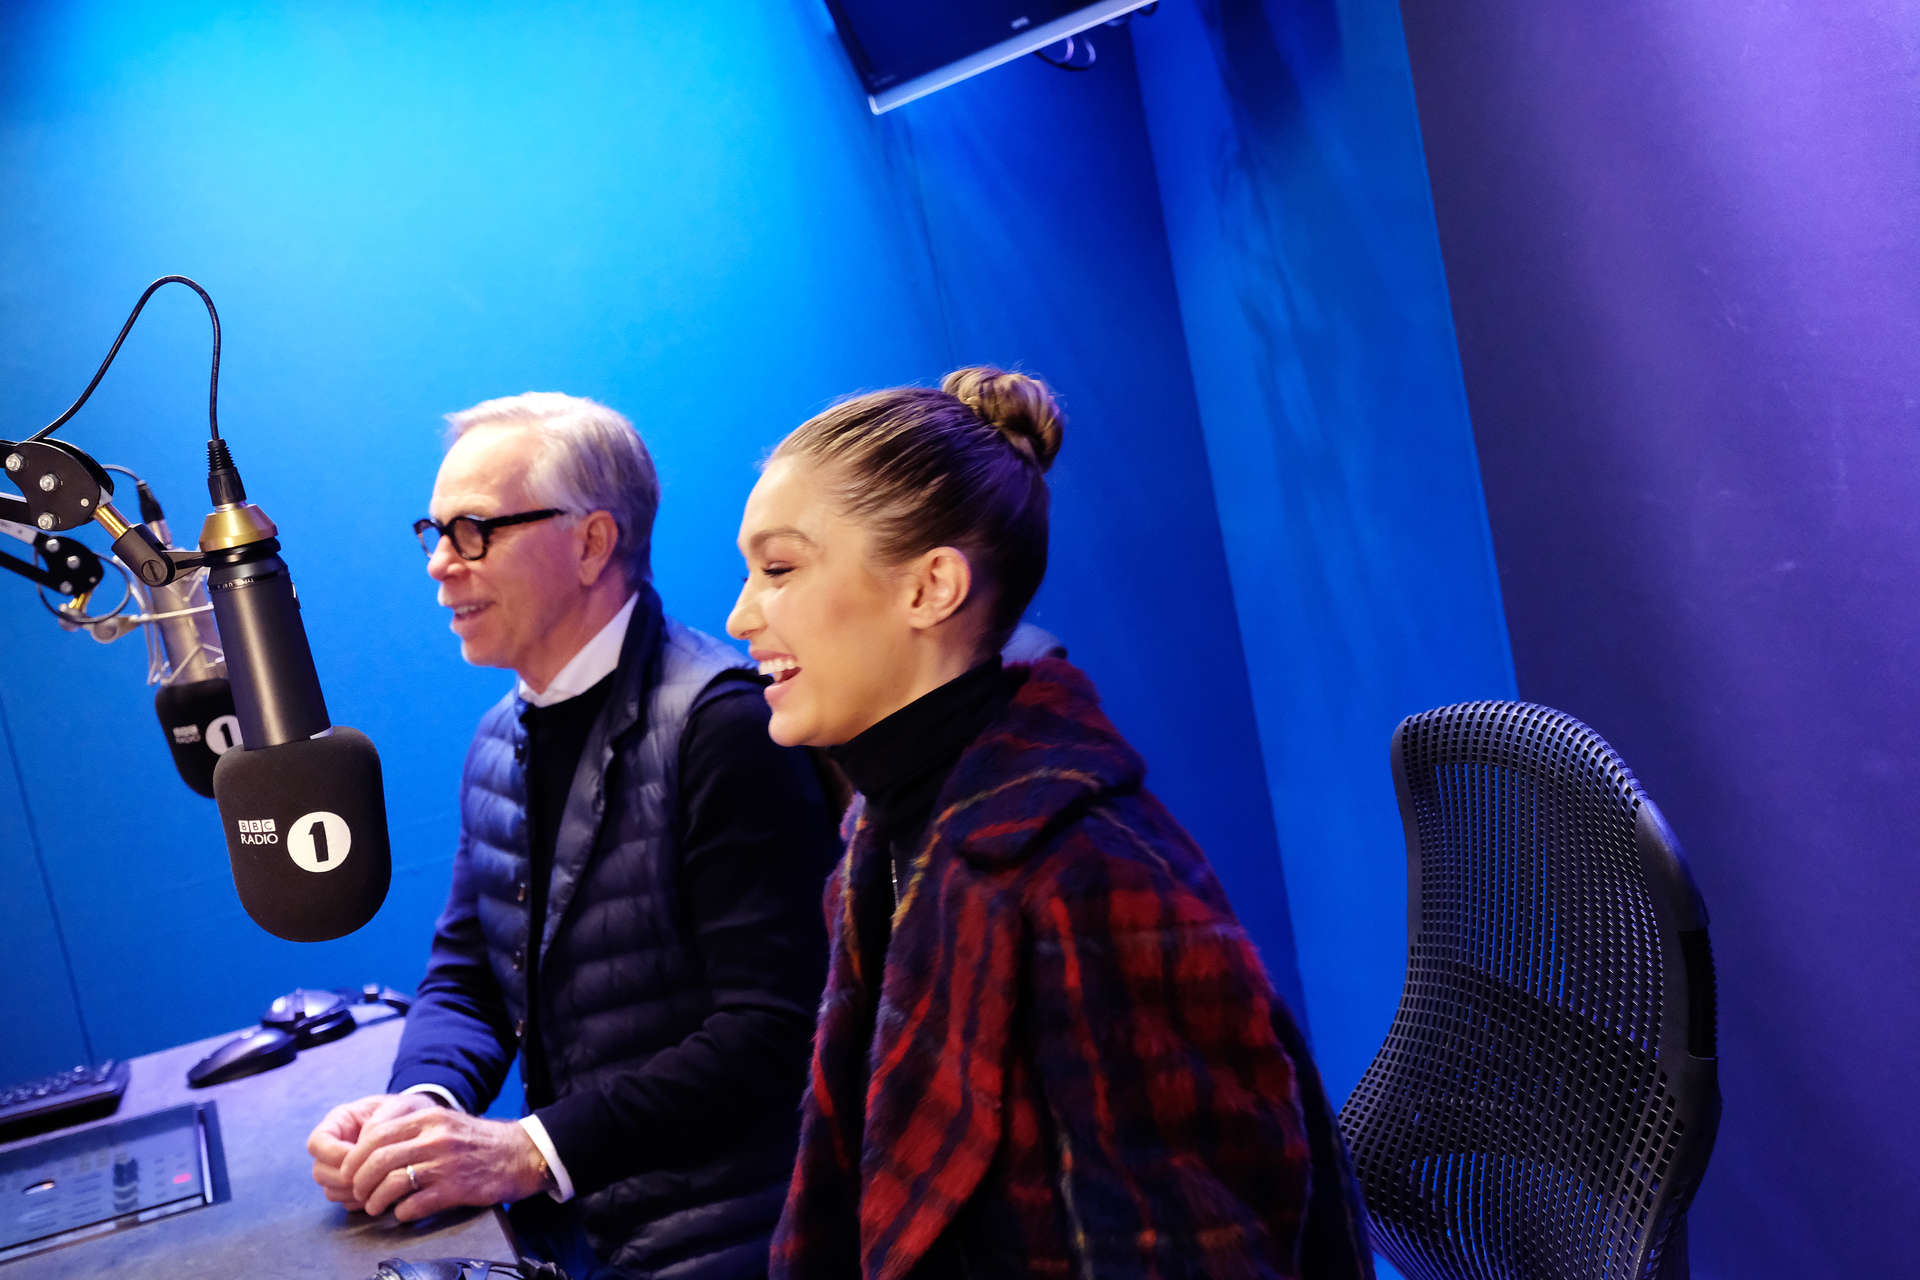 Gigi Hadid and Tommy Hilfiger in the studio.